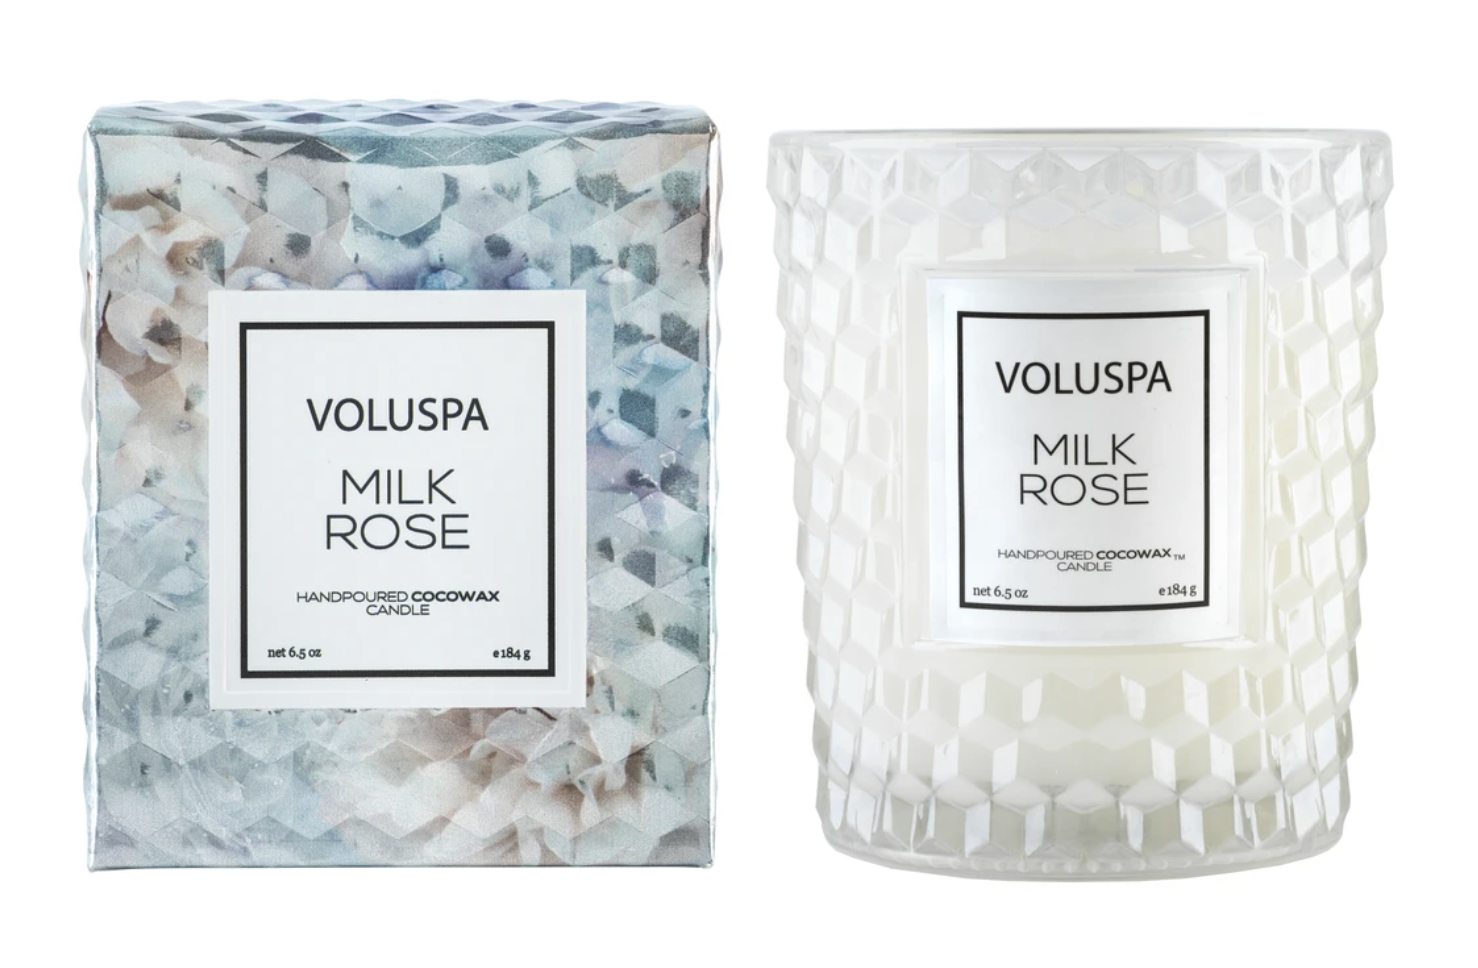 Voluspa Milk Rose, Class Glass Candle, Gift Boxed